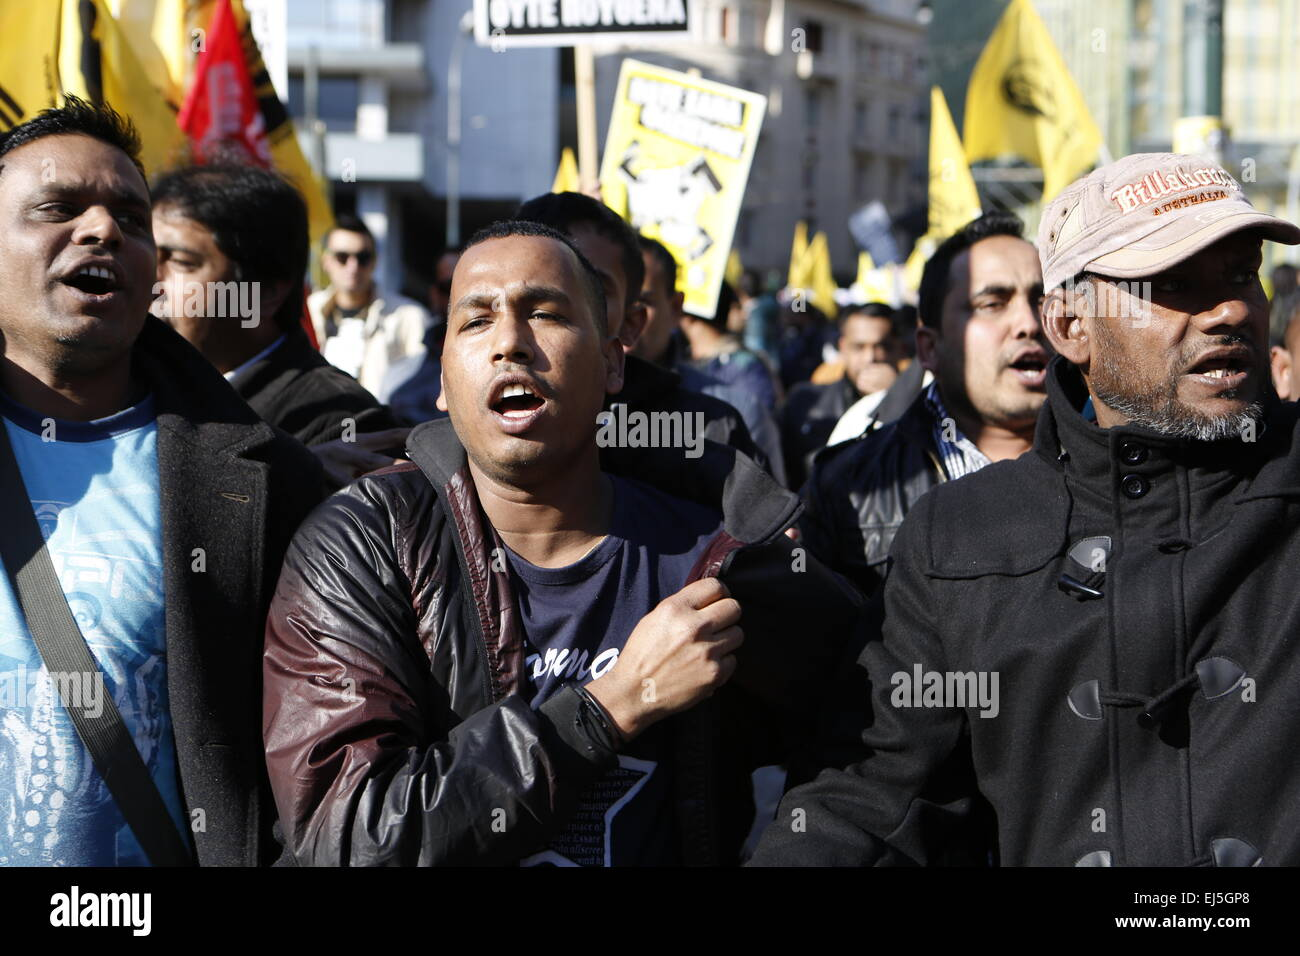 Athens, Greece. 21st March 2015. An immigrant shouts anti-rasist slogans. ANTARSYA (Anticapitalist Left Cooperation - Stock Image